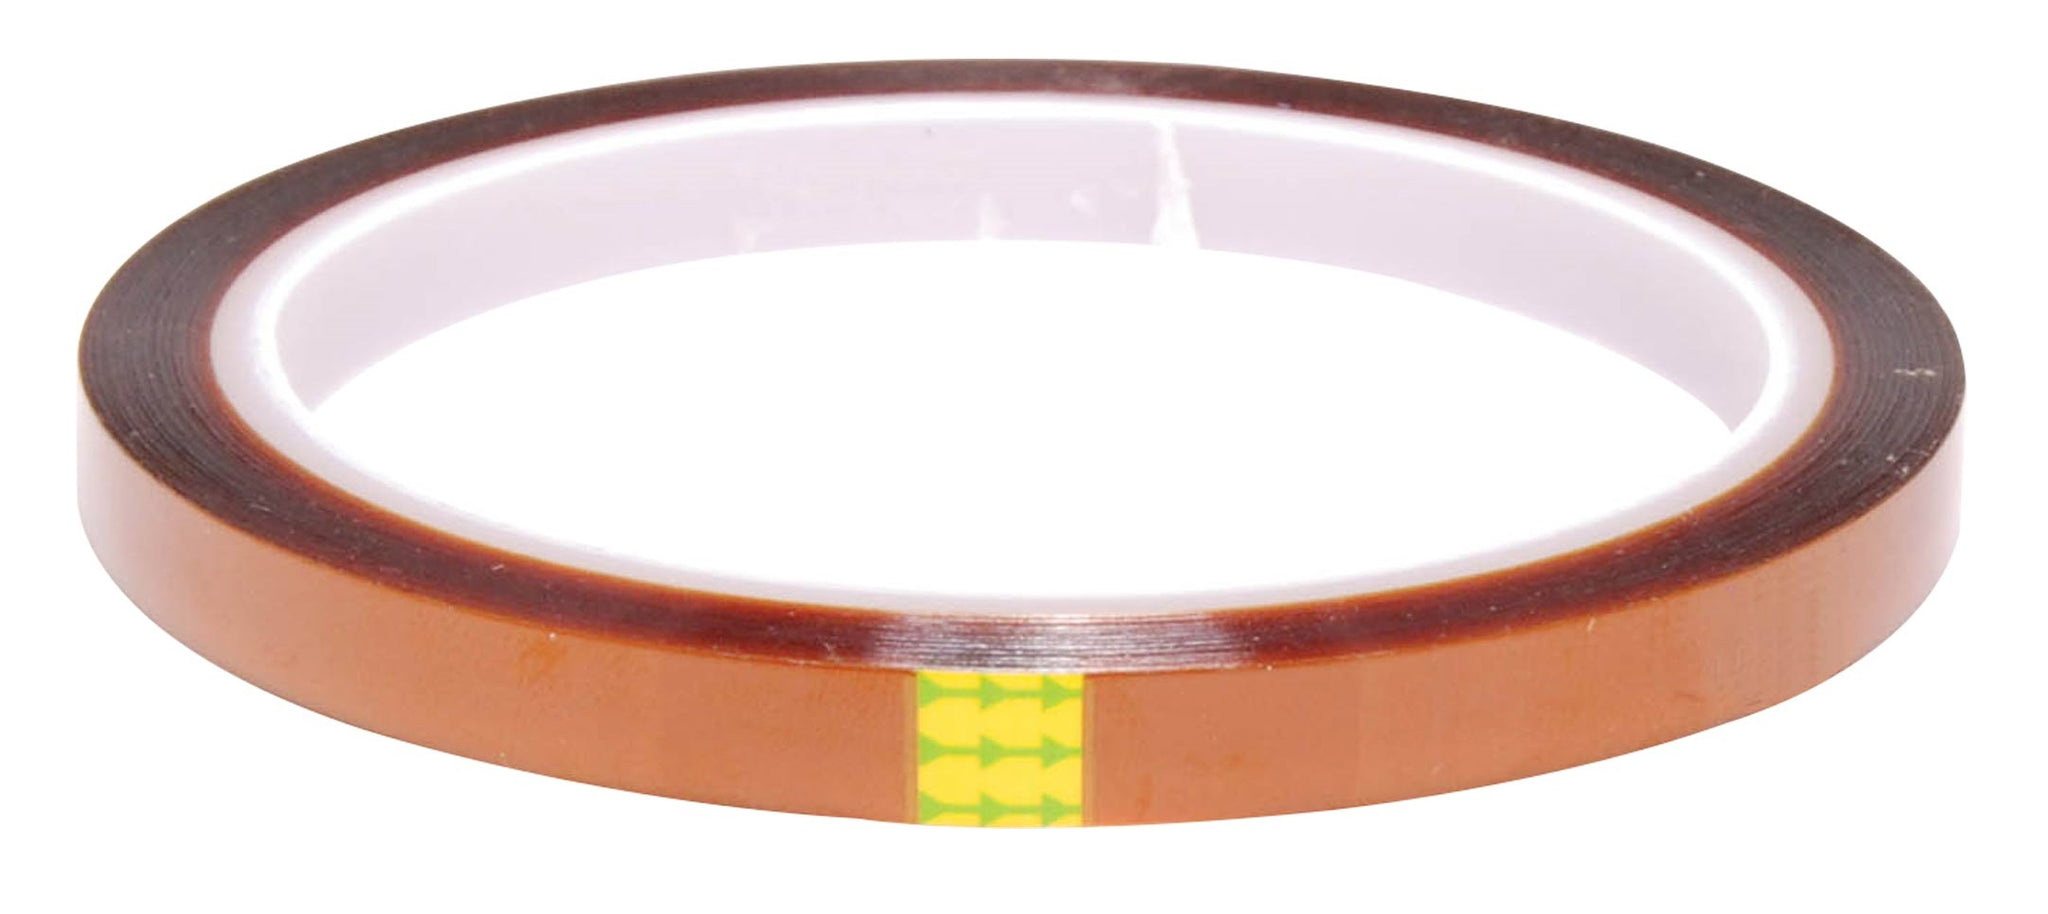 Chemtools Chemtools High Temperature Polyimide Tape - Various Sizes - BNR Industrial